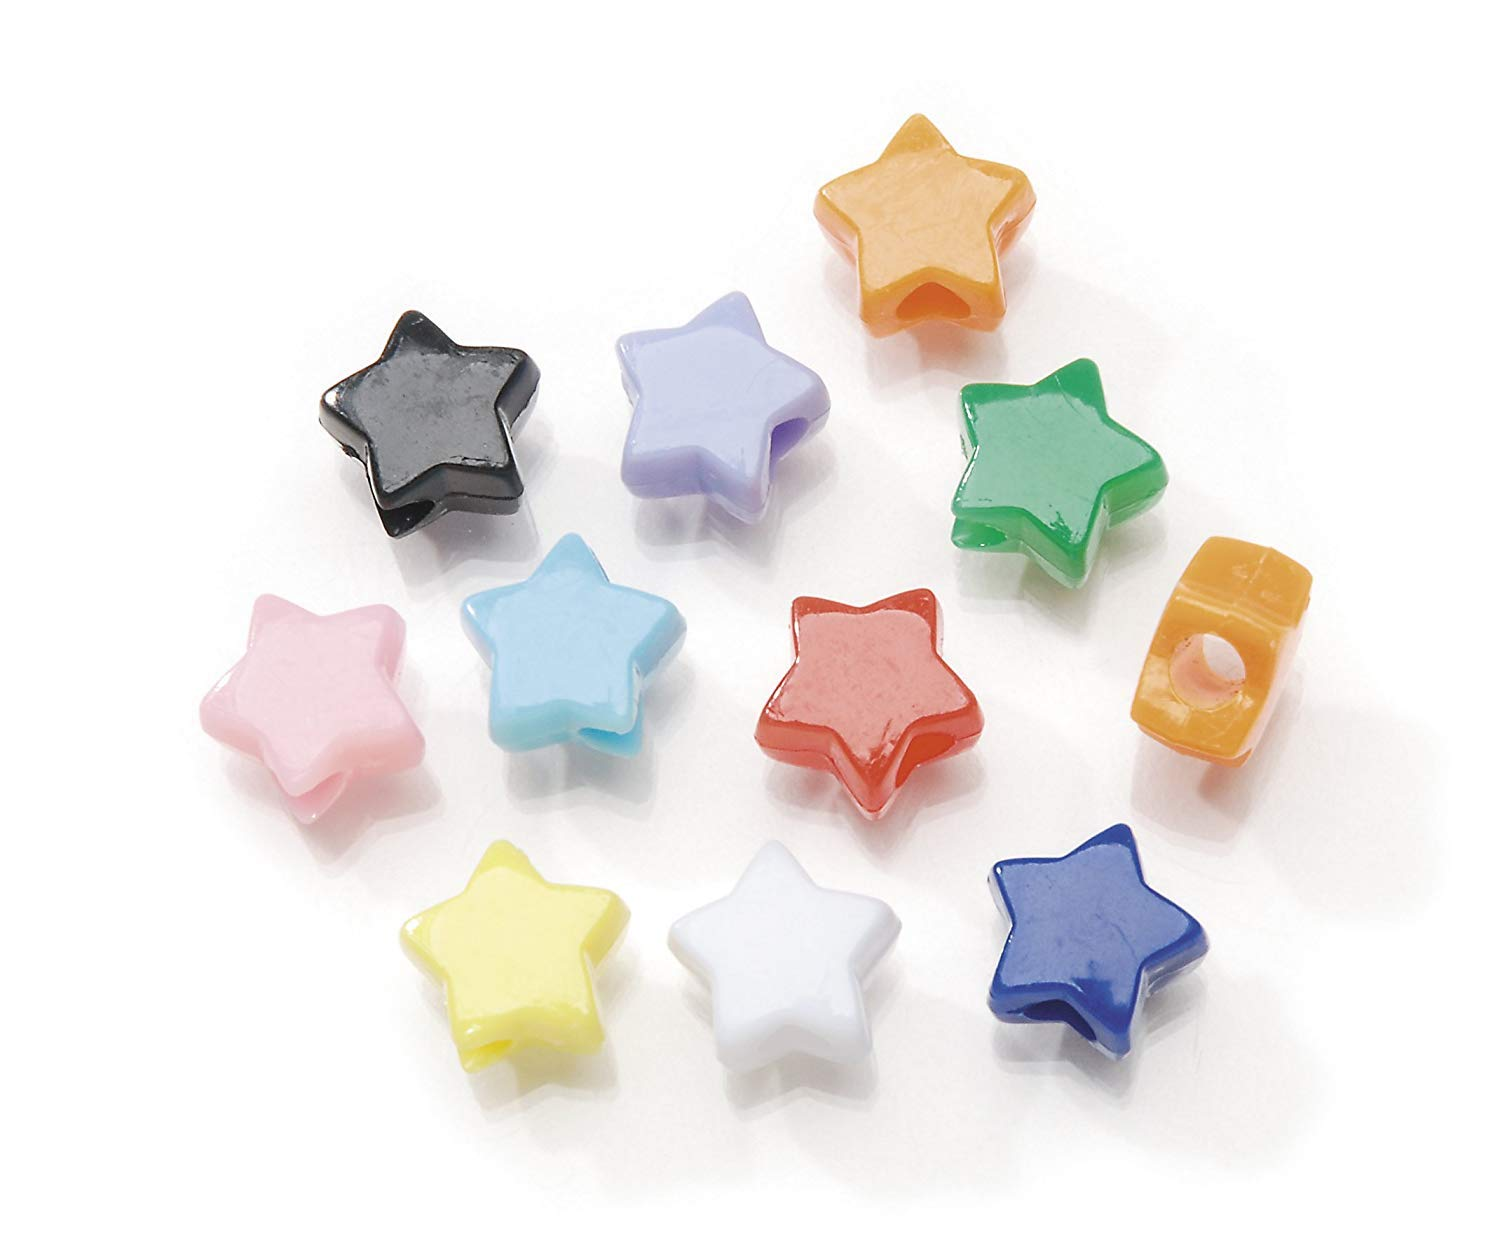 Darice, 7X Assorted Pony Craft Projects for All Ages Jewelry, Ornaments, Key Chains, Hair Star Plastic Bead with Center Hole, 7x12mm Diameter, 1 lb. Bag, Opaque, Multicolored